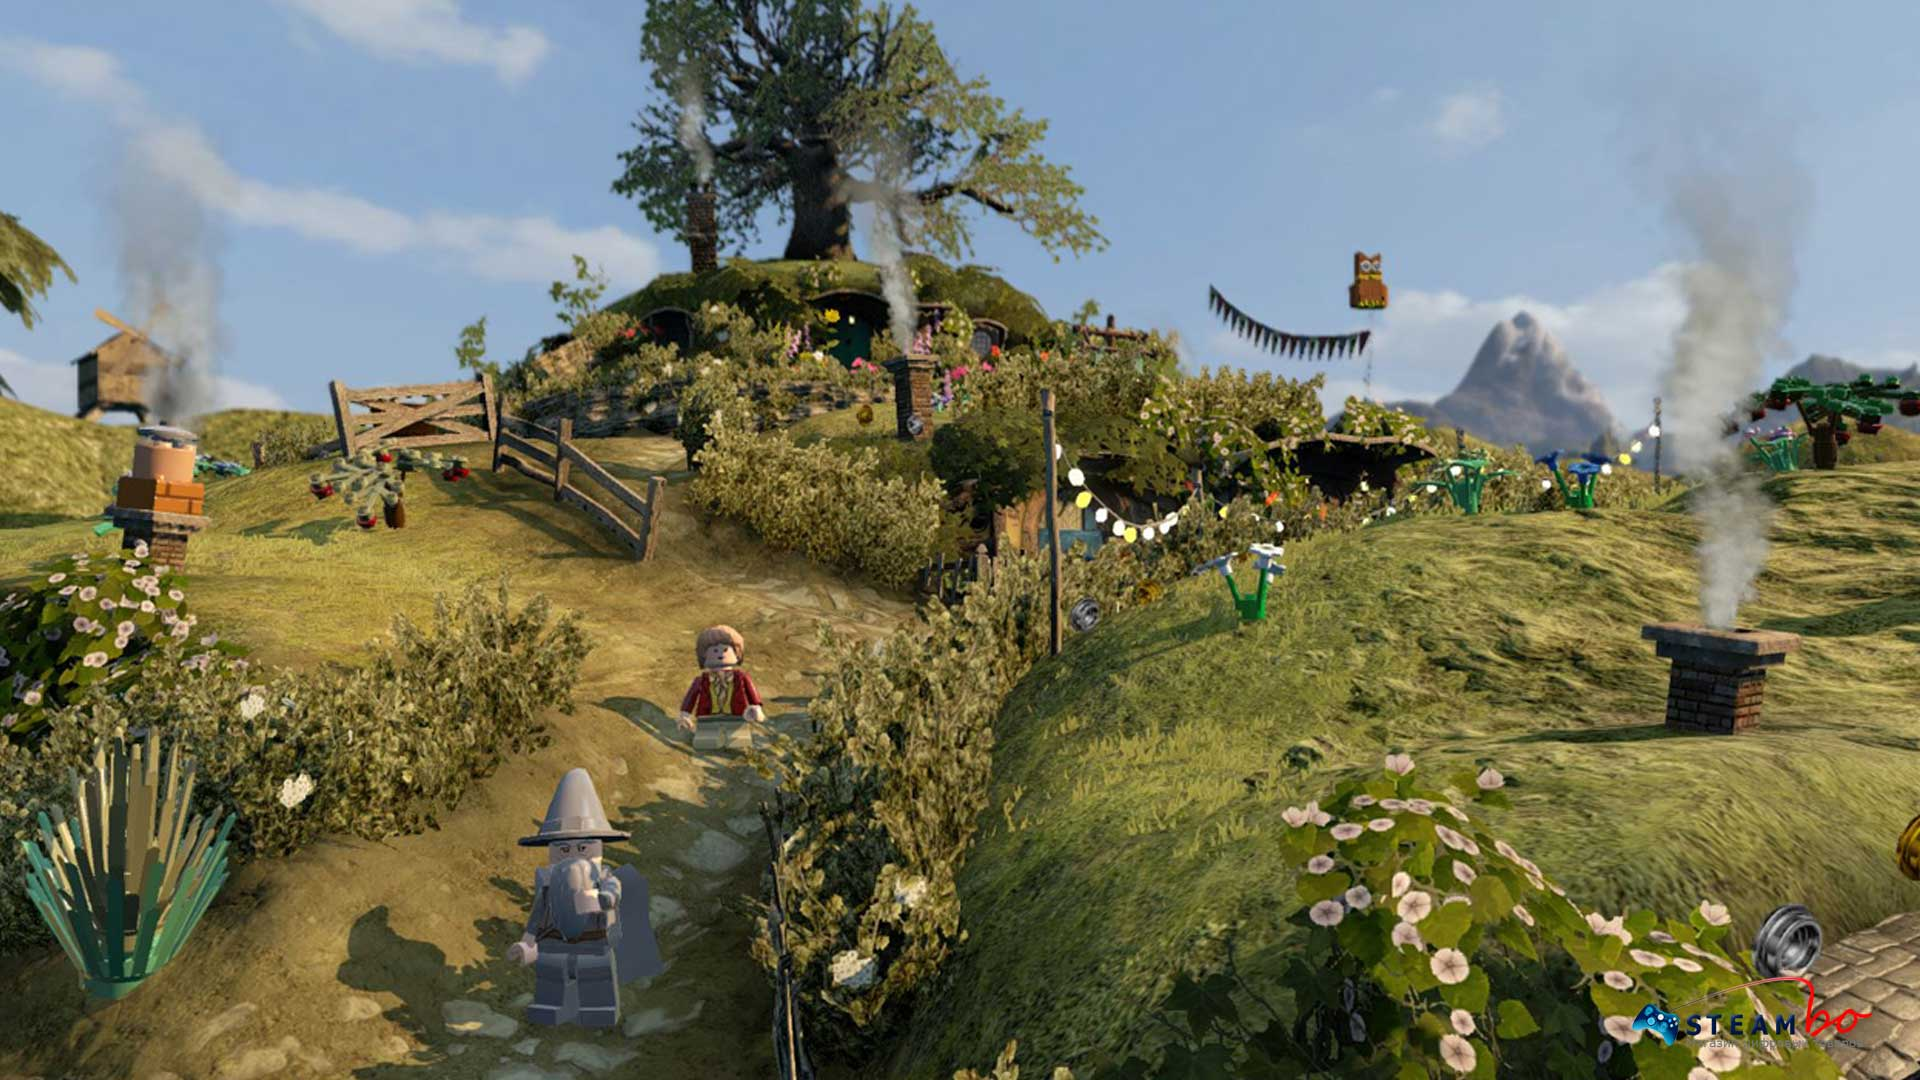 LEGO - The Hobbit Region Free (Steam Gift / Key)